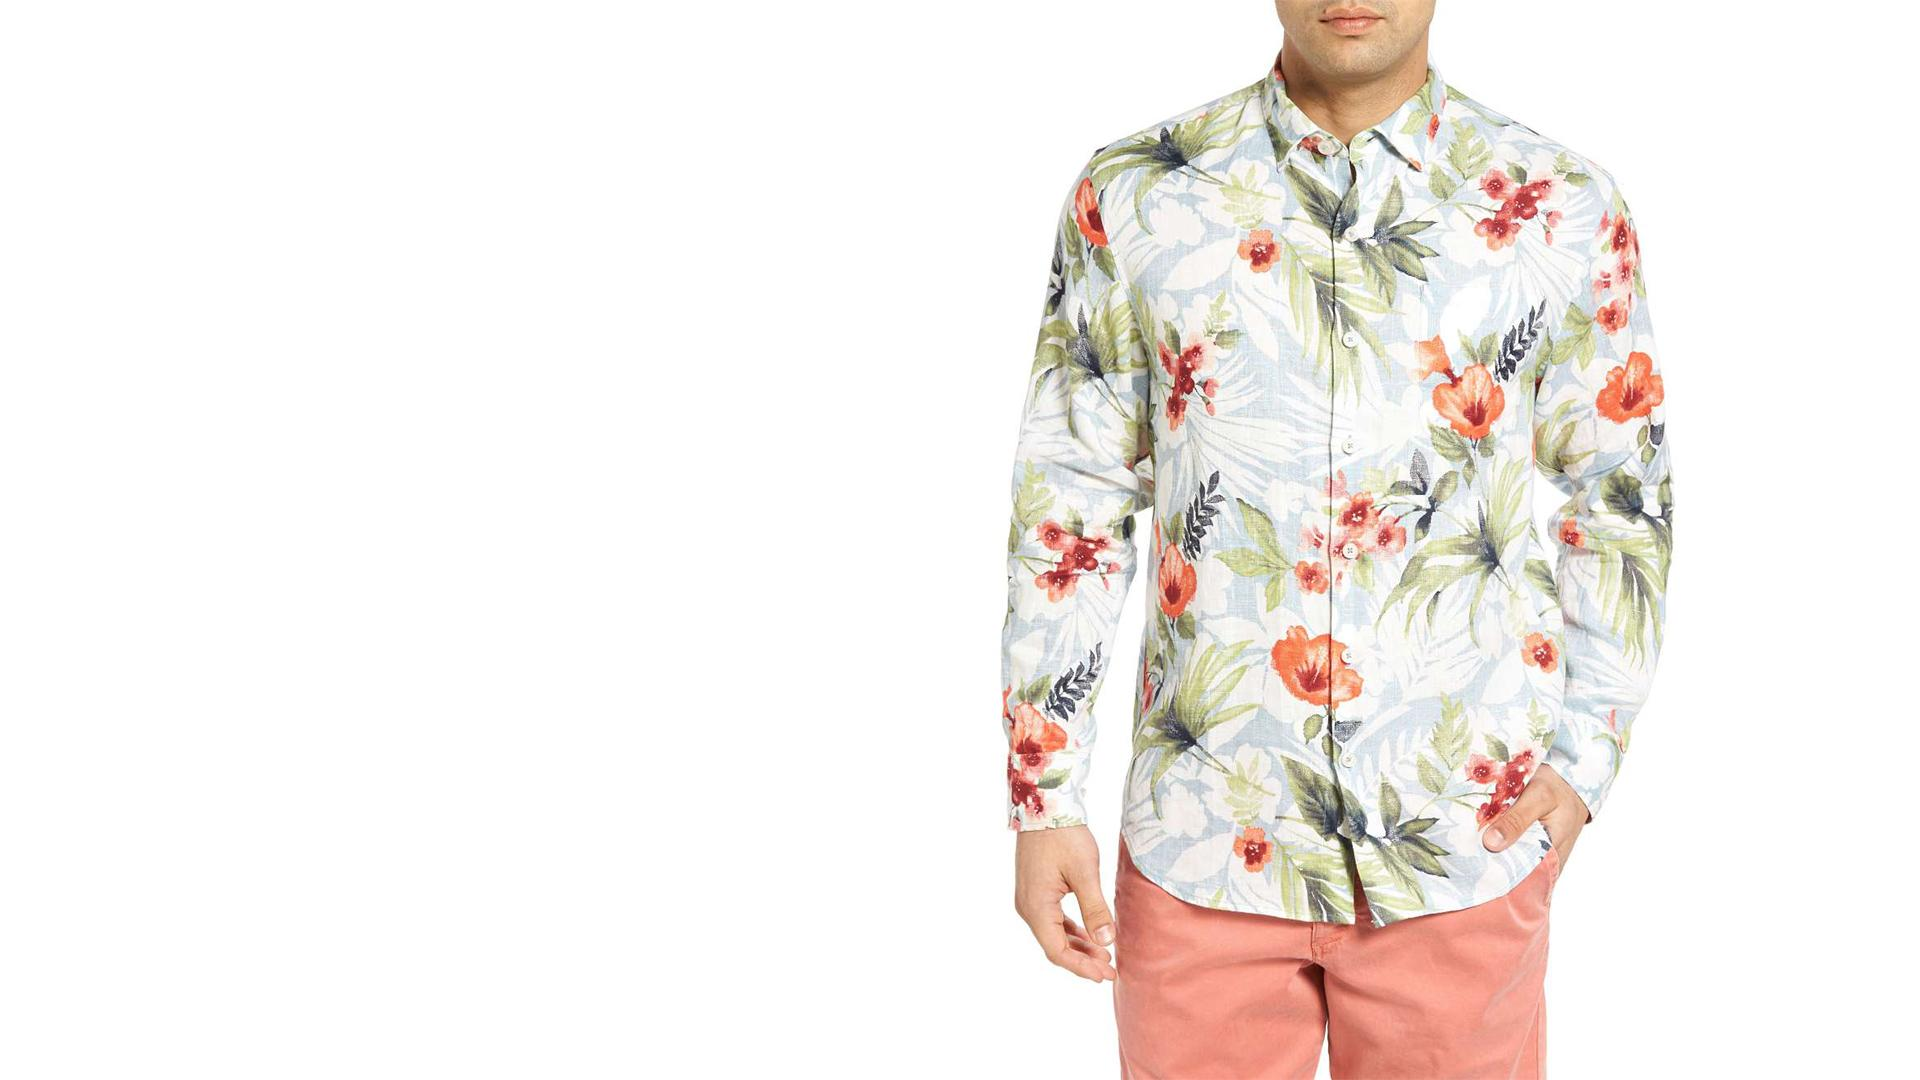 Floral Linen Shirt - Sigala, Ella Eyre - Came Here For Love